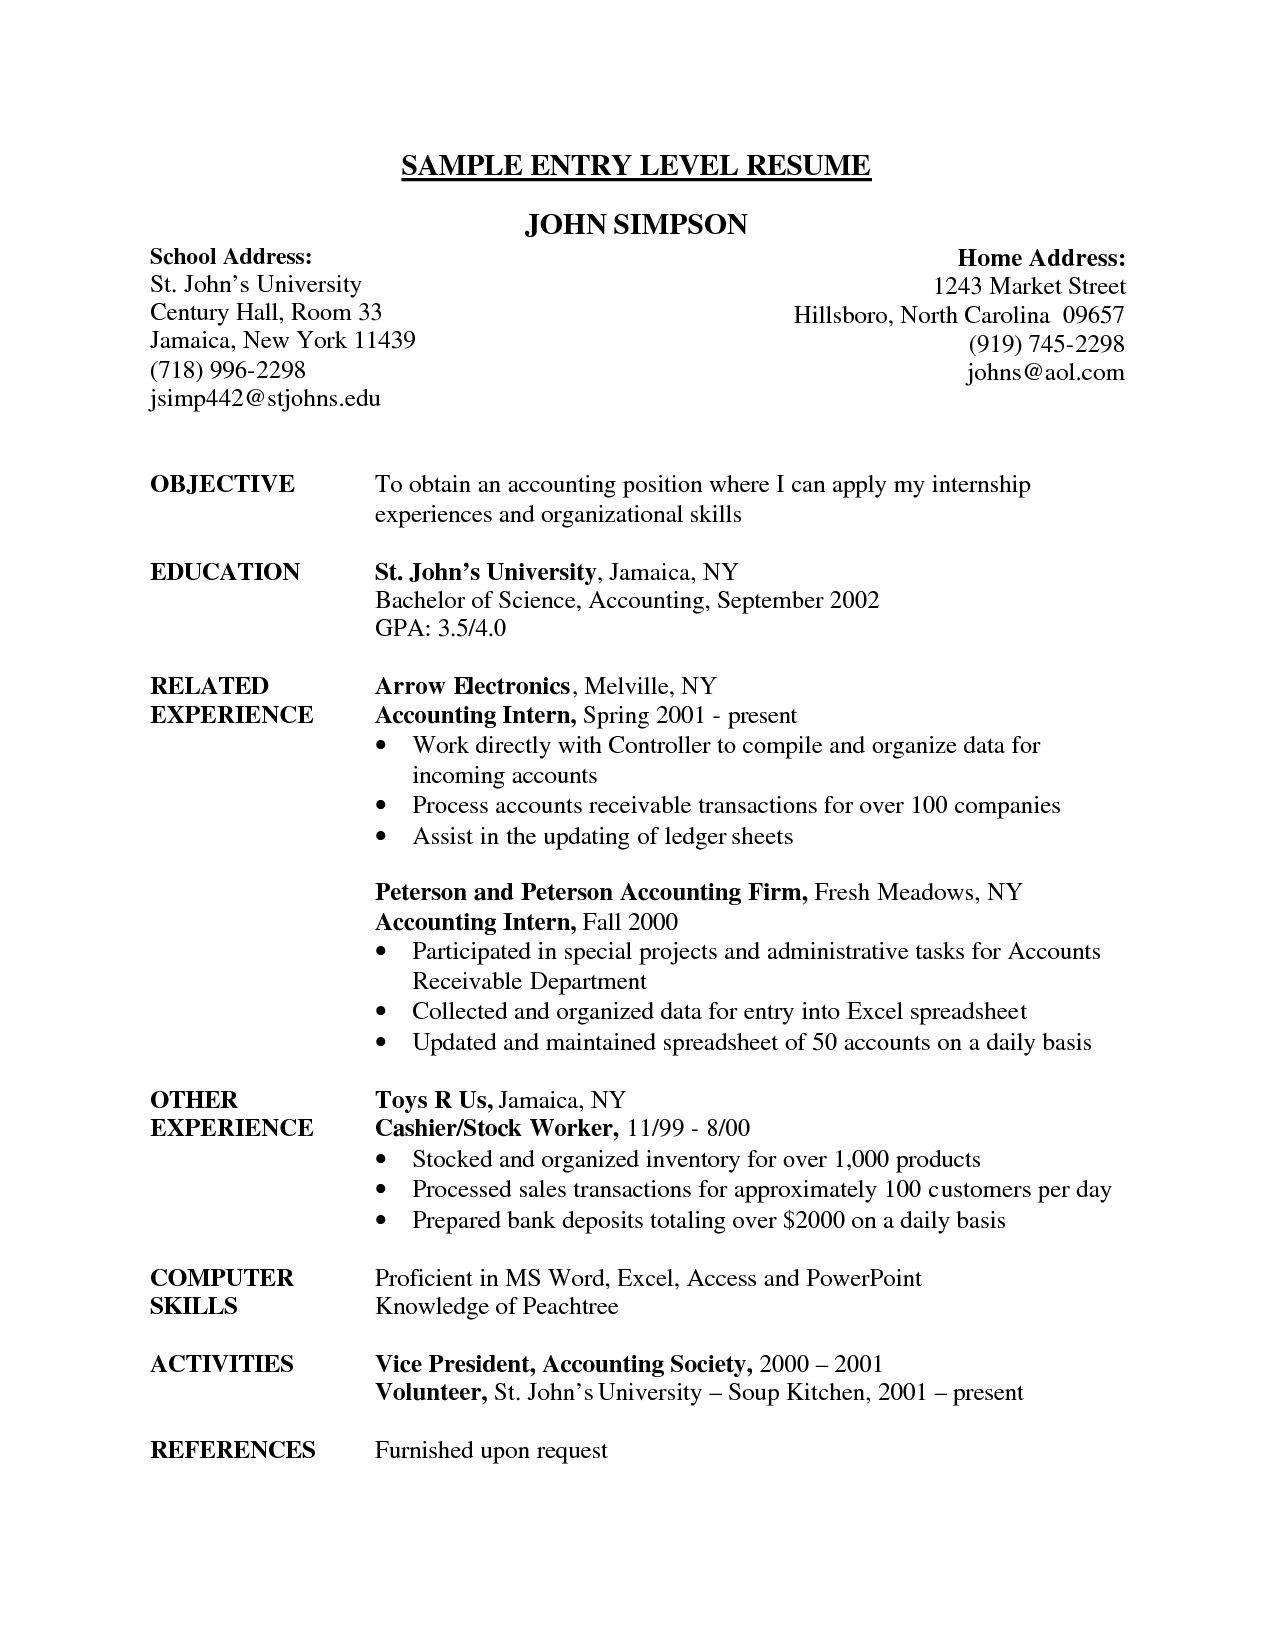 Career Objective Statement Examples Brilliant Resume Examples Entry Level  Resume Examples  Pinterest  Resume .